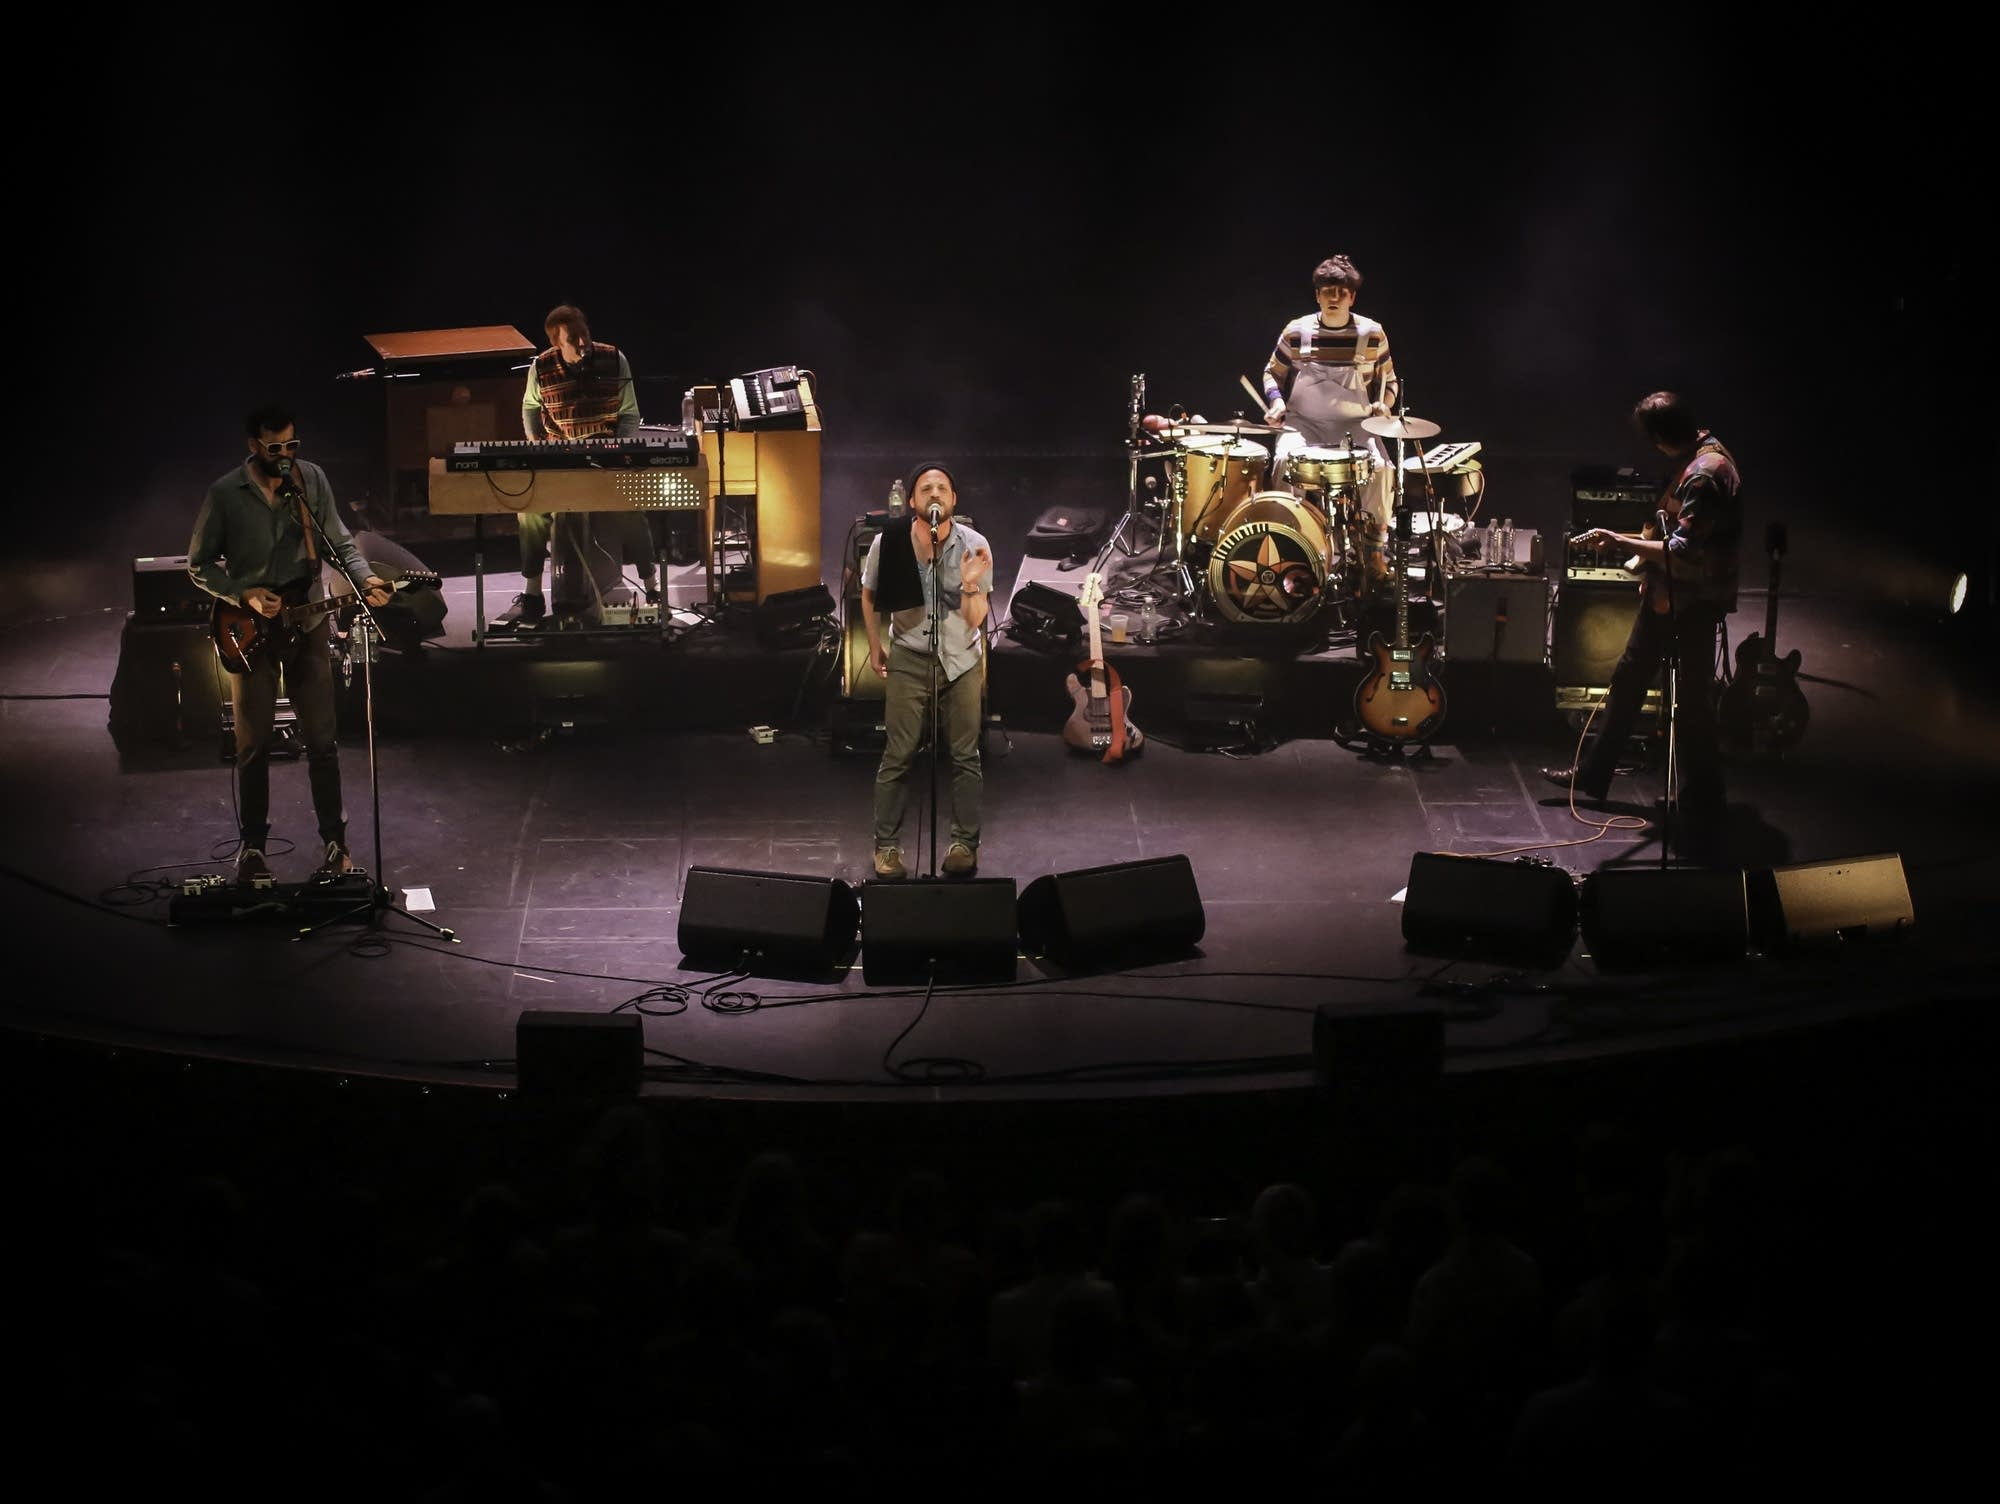 Dr. Dog live at the Palace Theatre